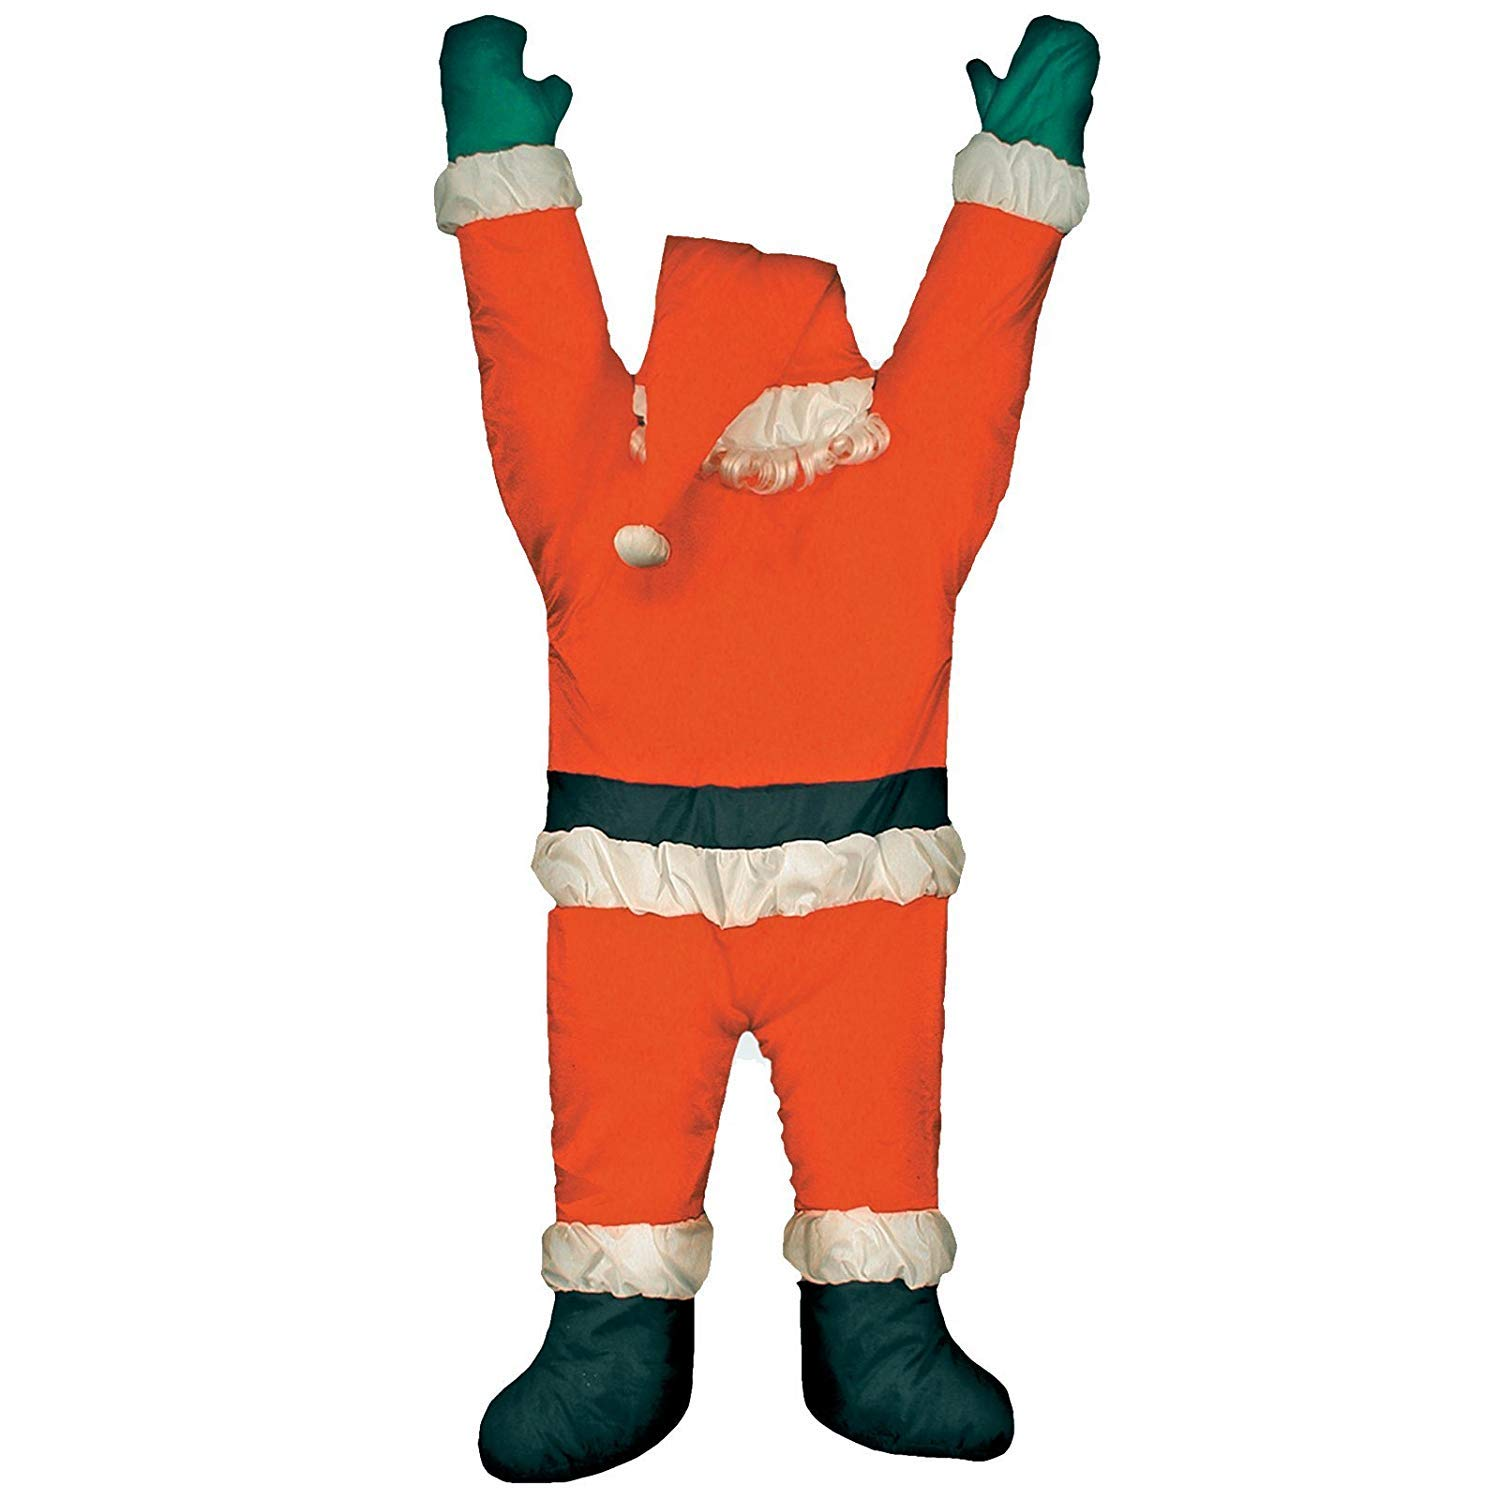 LIFE SZ Christmas Hanging SANTA suit from on the gutter roof Outdoor Decoration